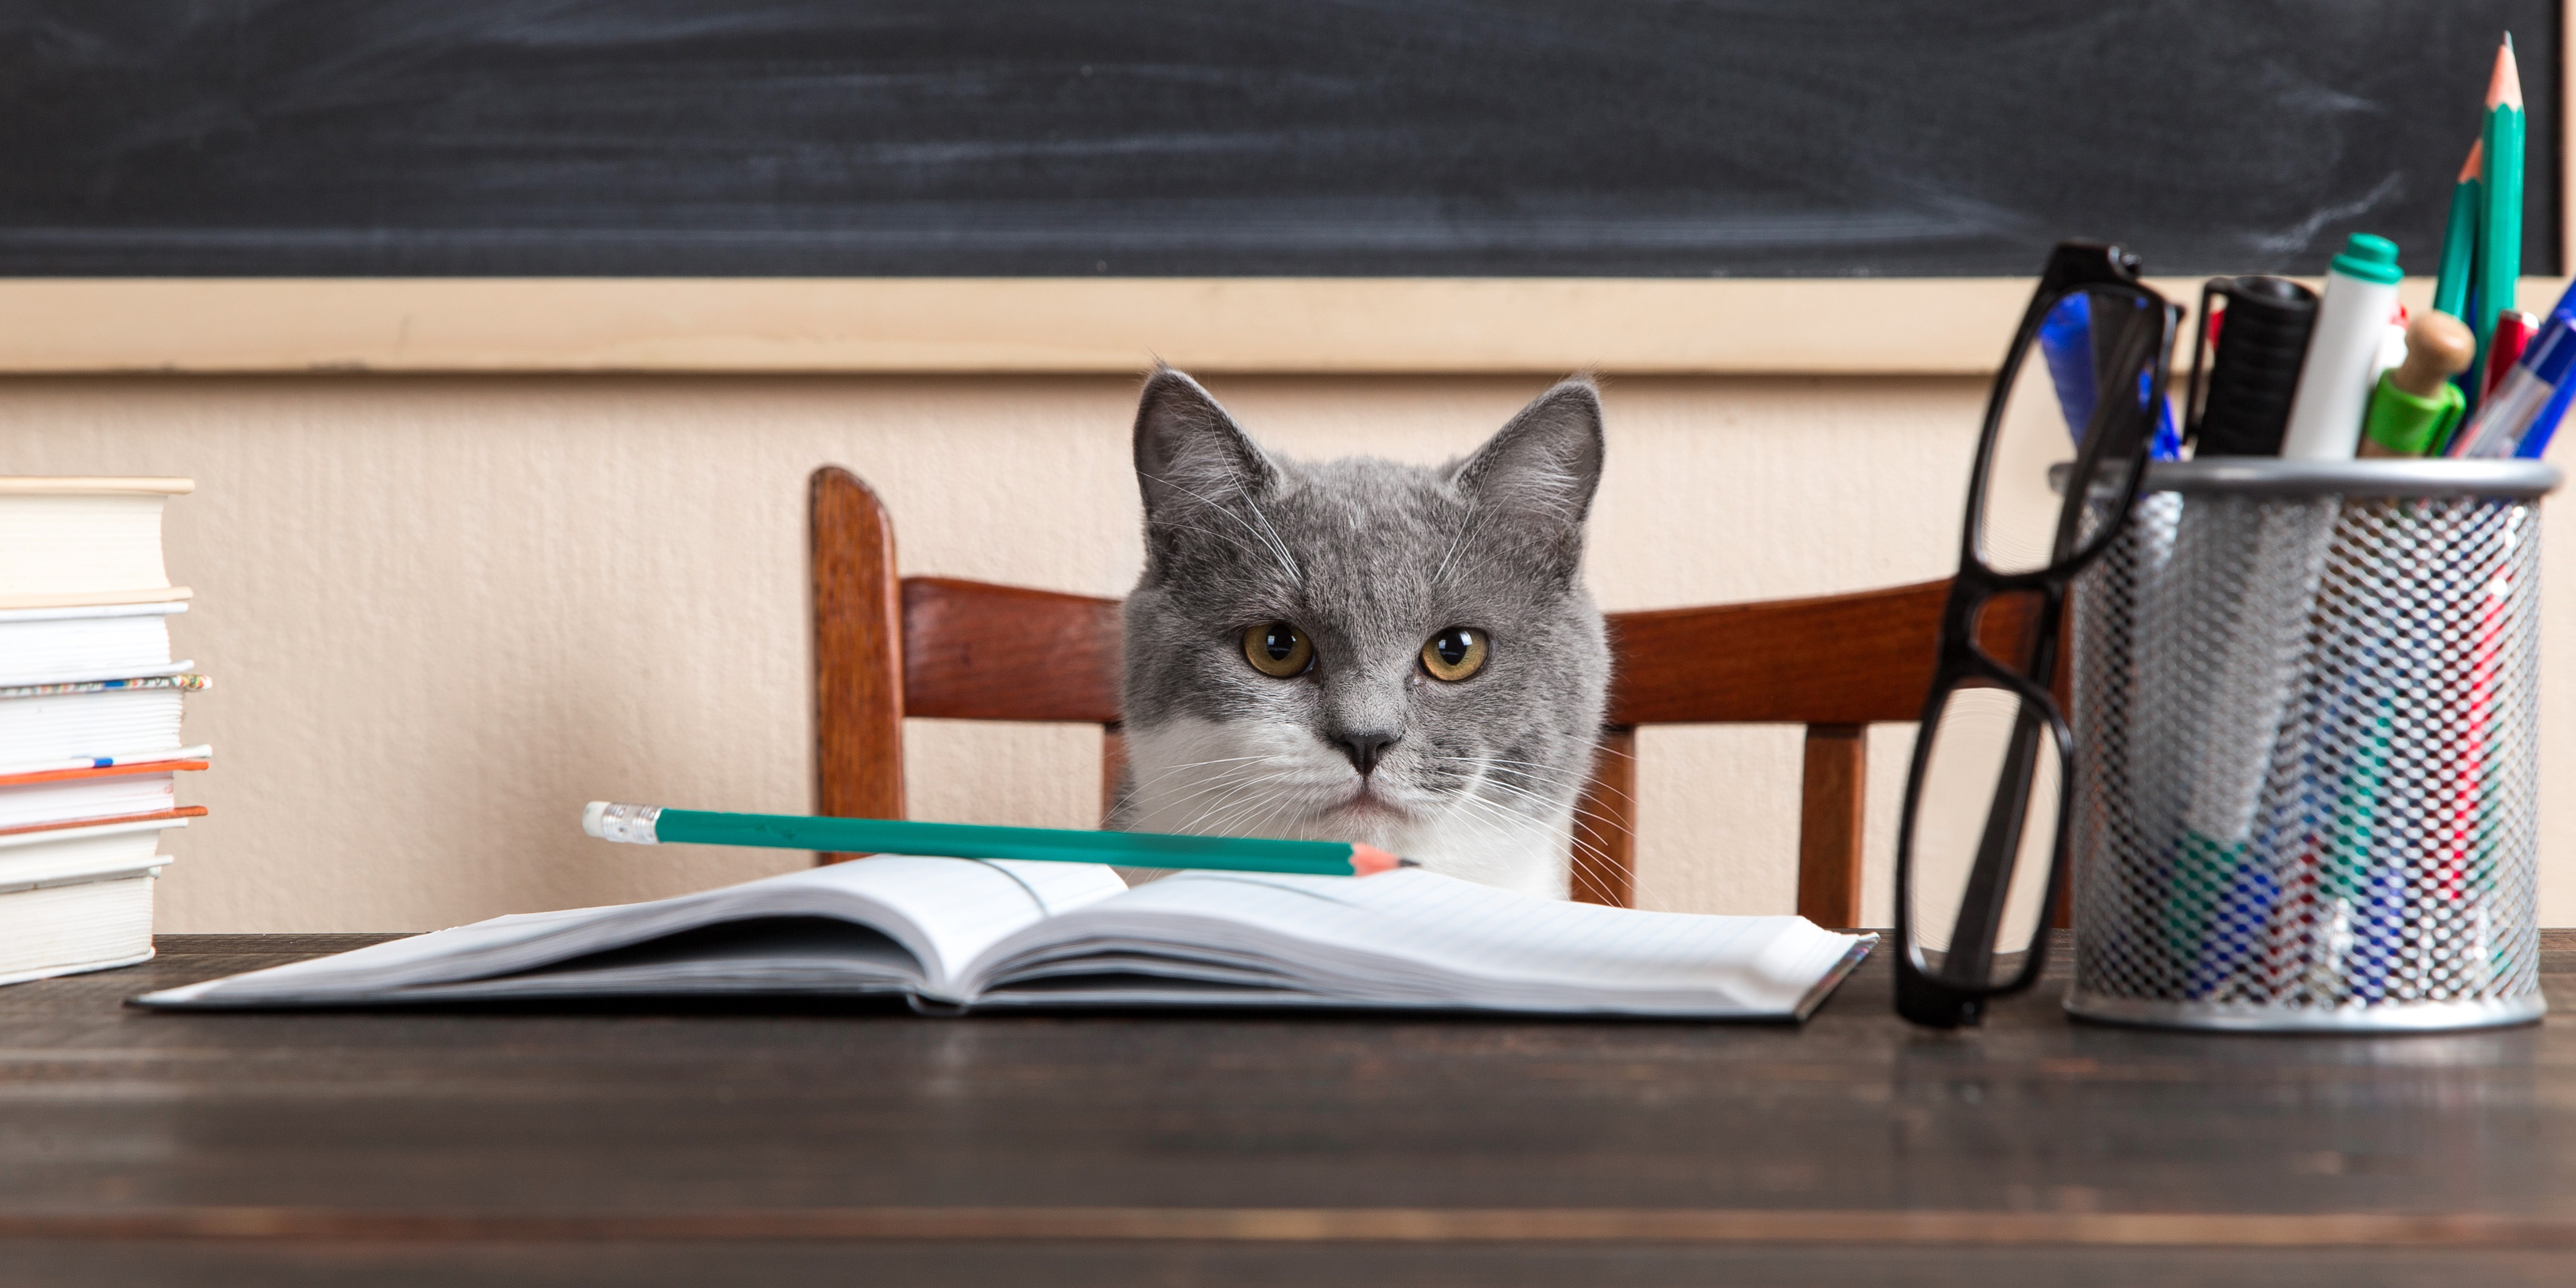 Grey cat sits at a table with books and notebooks, studying at home. Concept for teacher's day, education for pet.